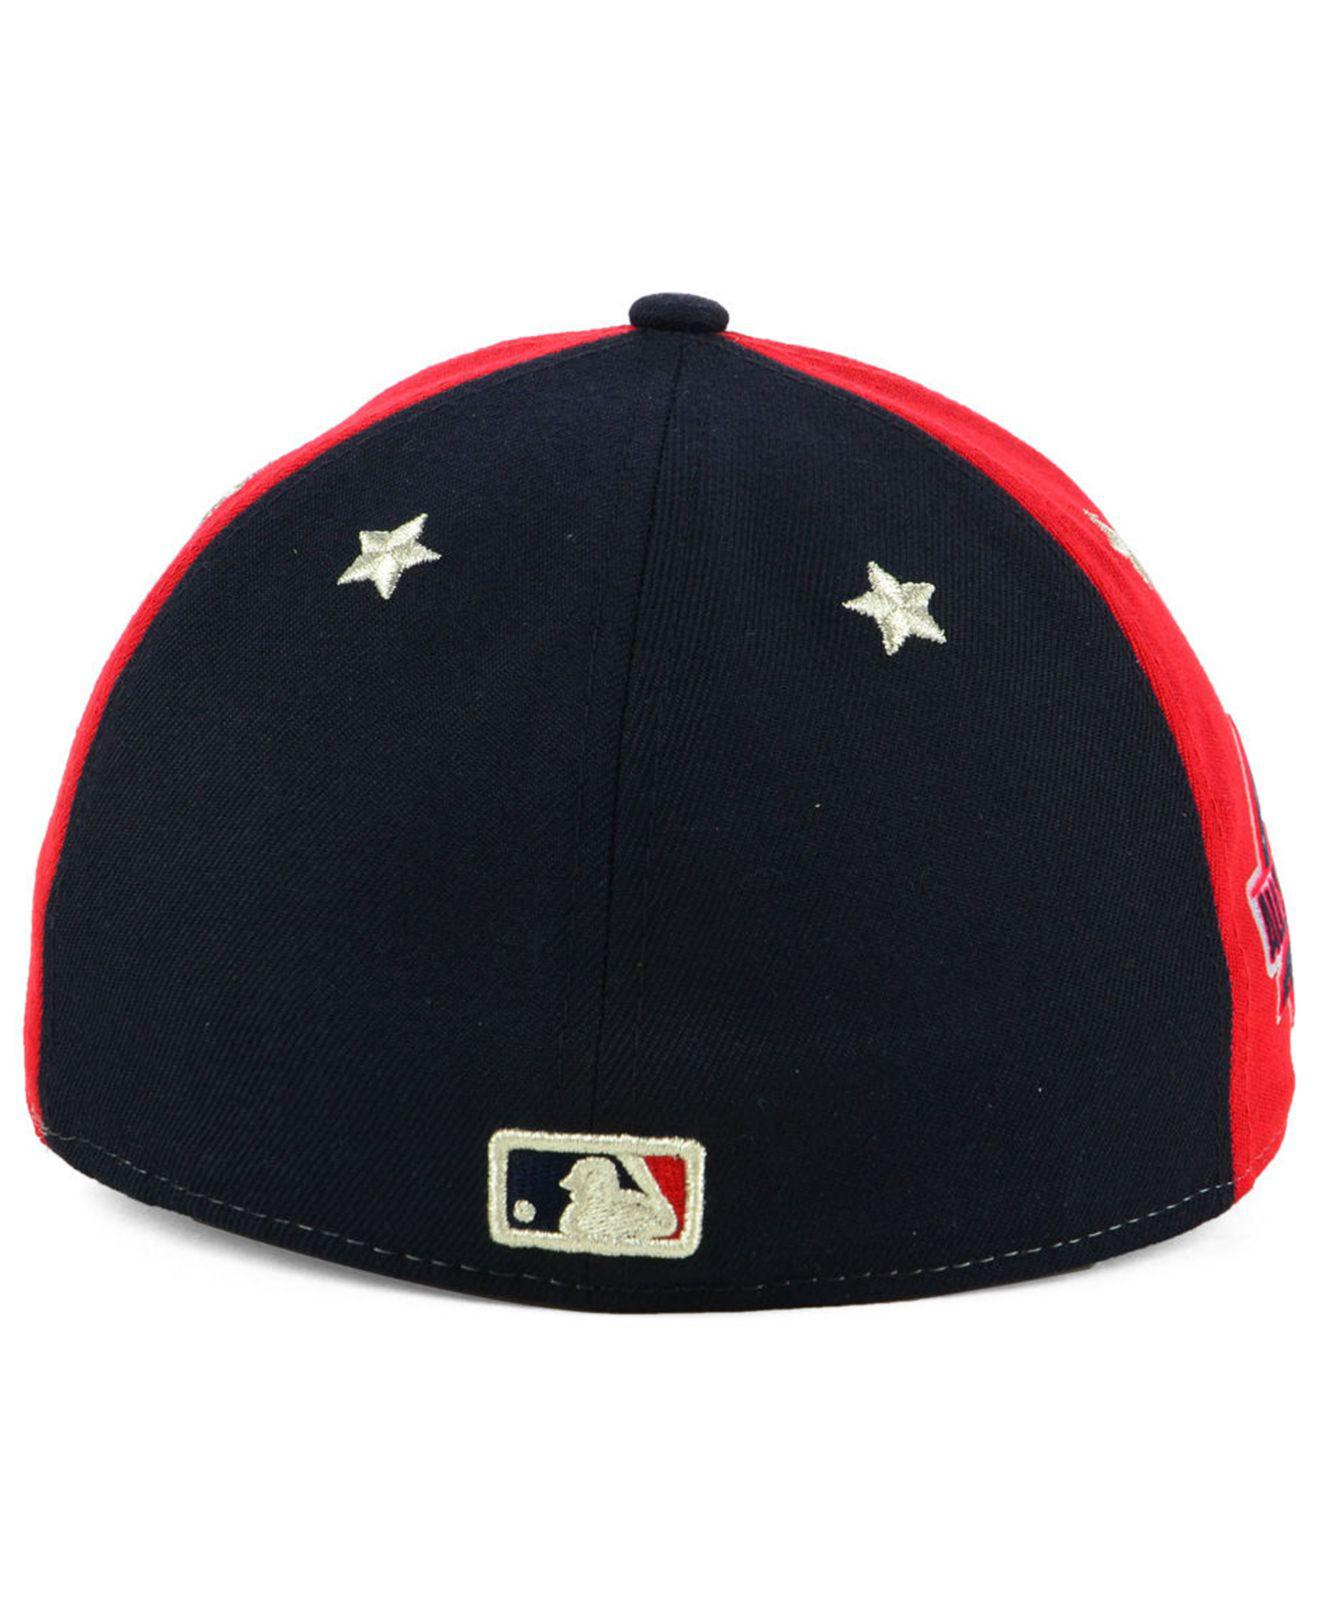 newest f5861 9b536 ... hot atlanta braves all star game patch low profile 59fifty fitted cap  2018 for. view ...